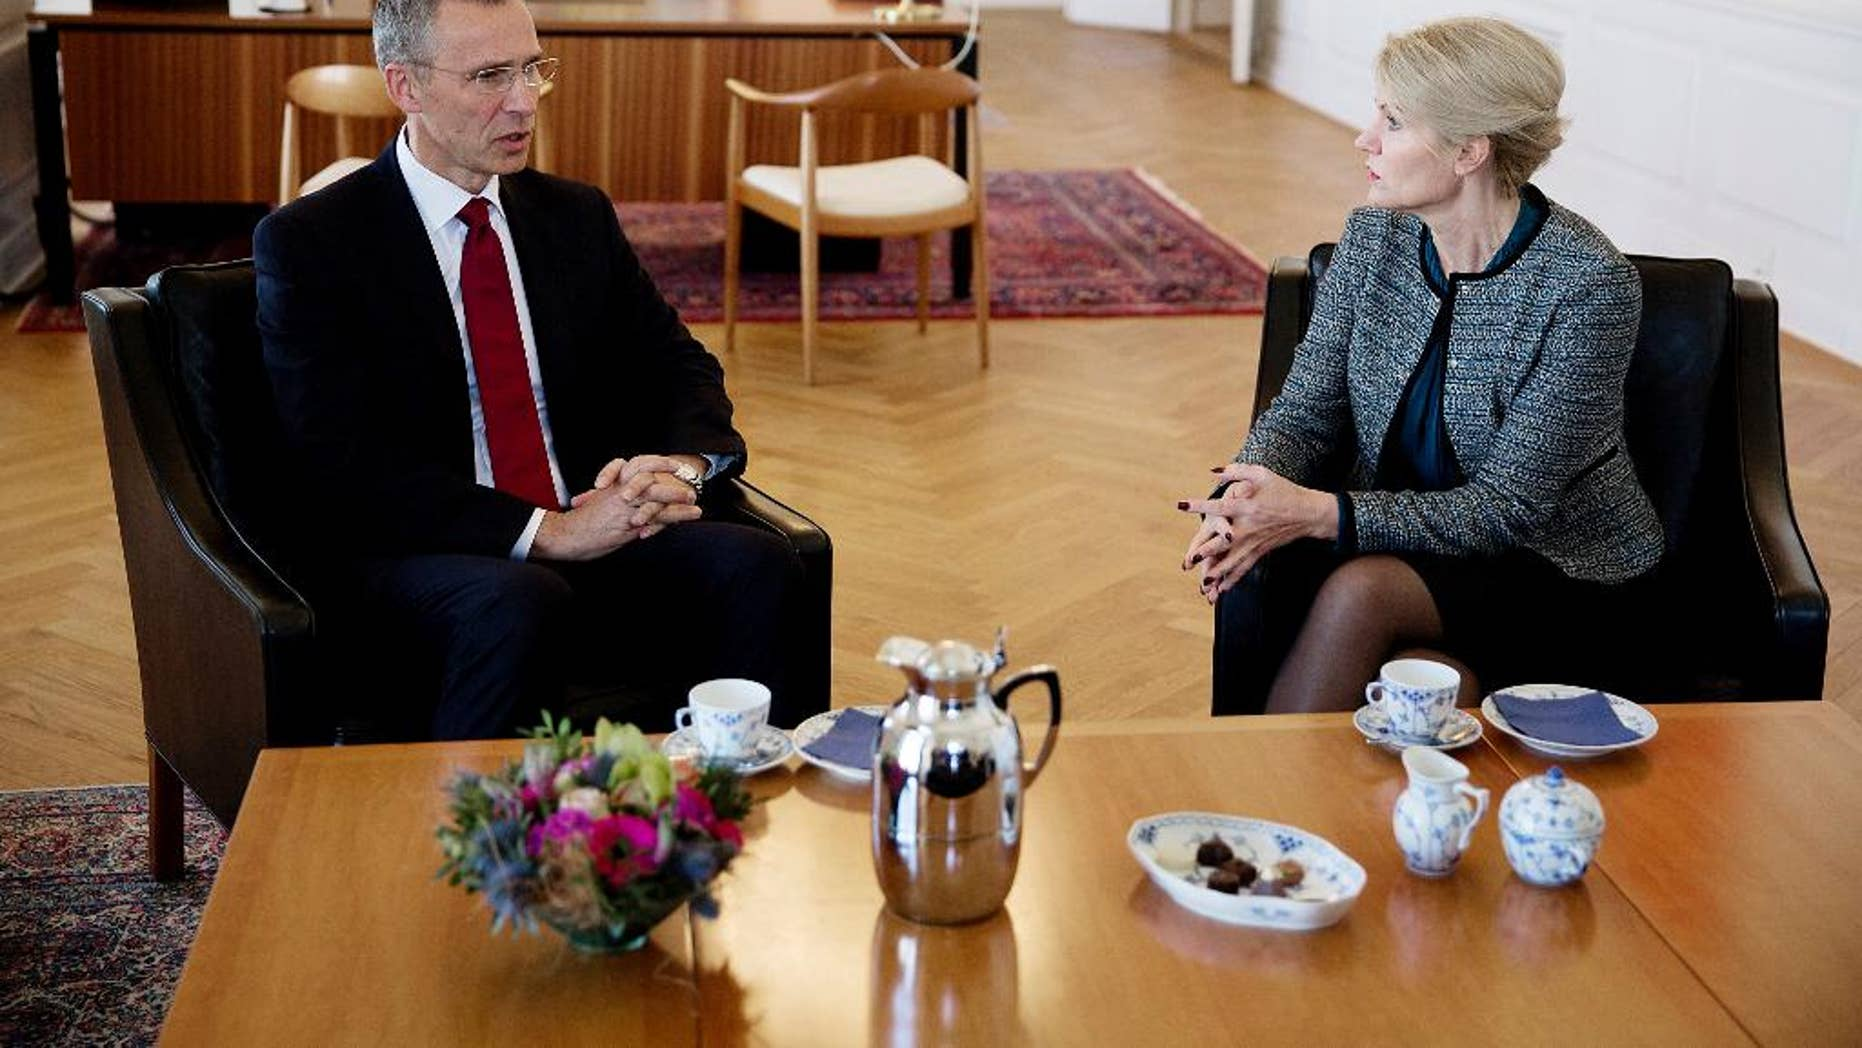 Secretary General of NATO, Jens Stoltenberg, meets with Denmark Prime Minister of Helle Thorning-Schmidt, right, at the Prime Minister's Office in Copenhagen on Monday April 20, 2015. (Thomas Borberg/Polfoto via AP) DENMARK OUT